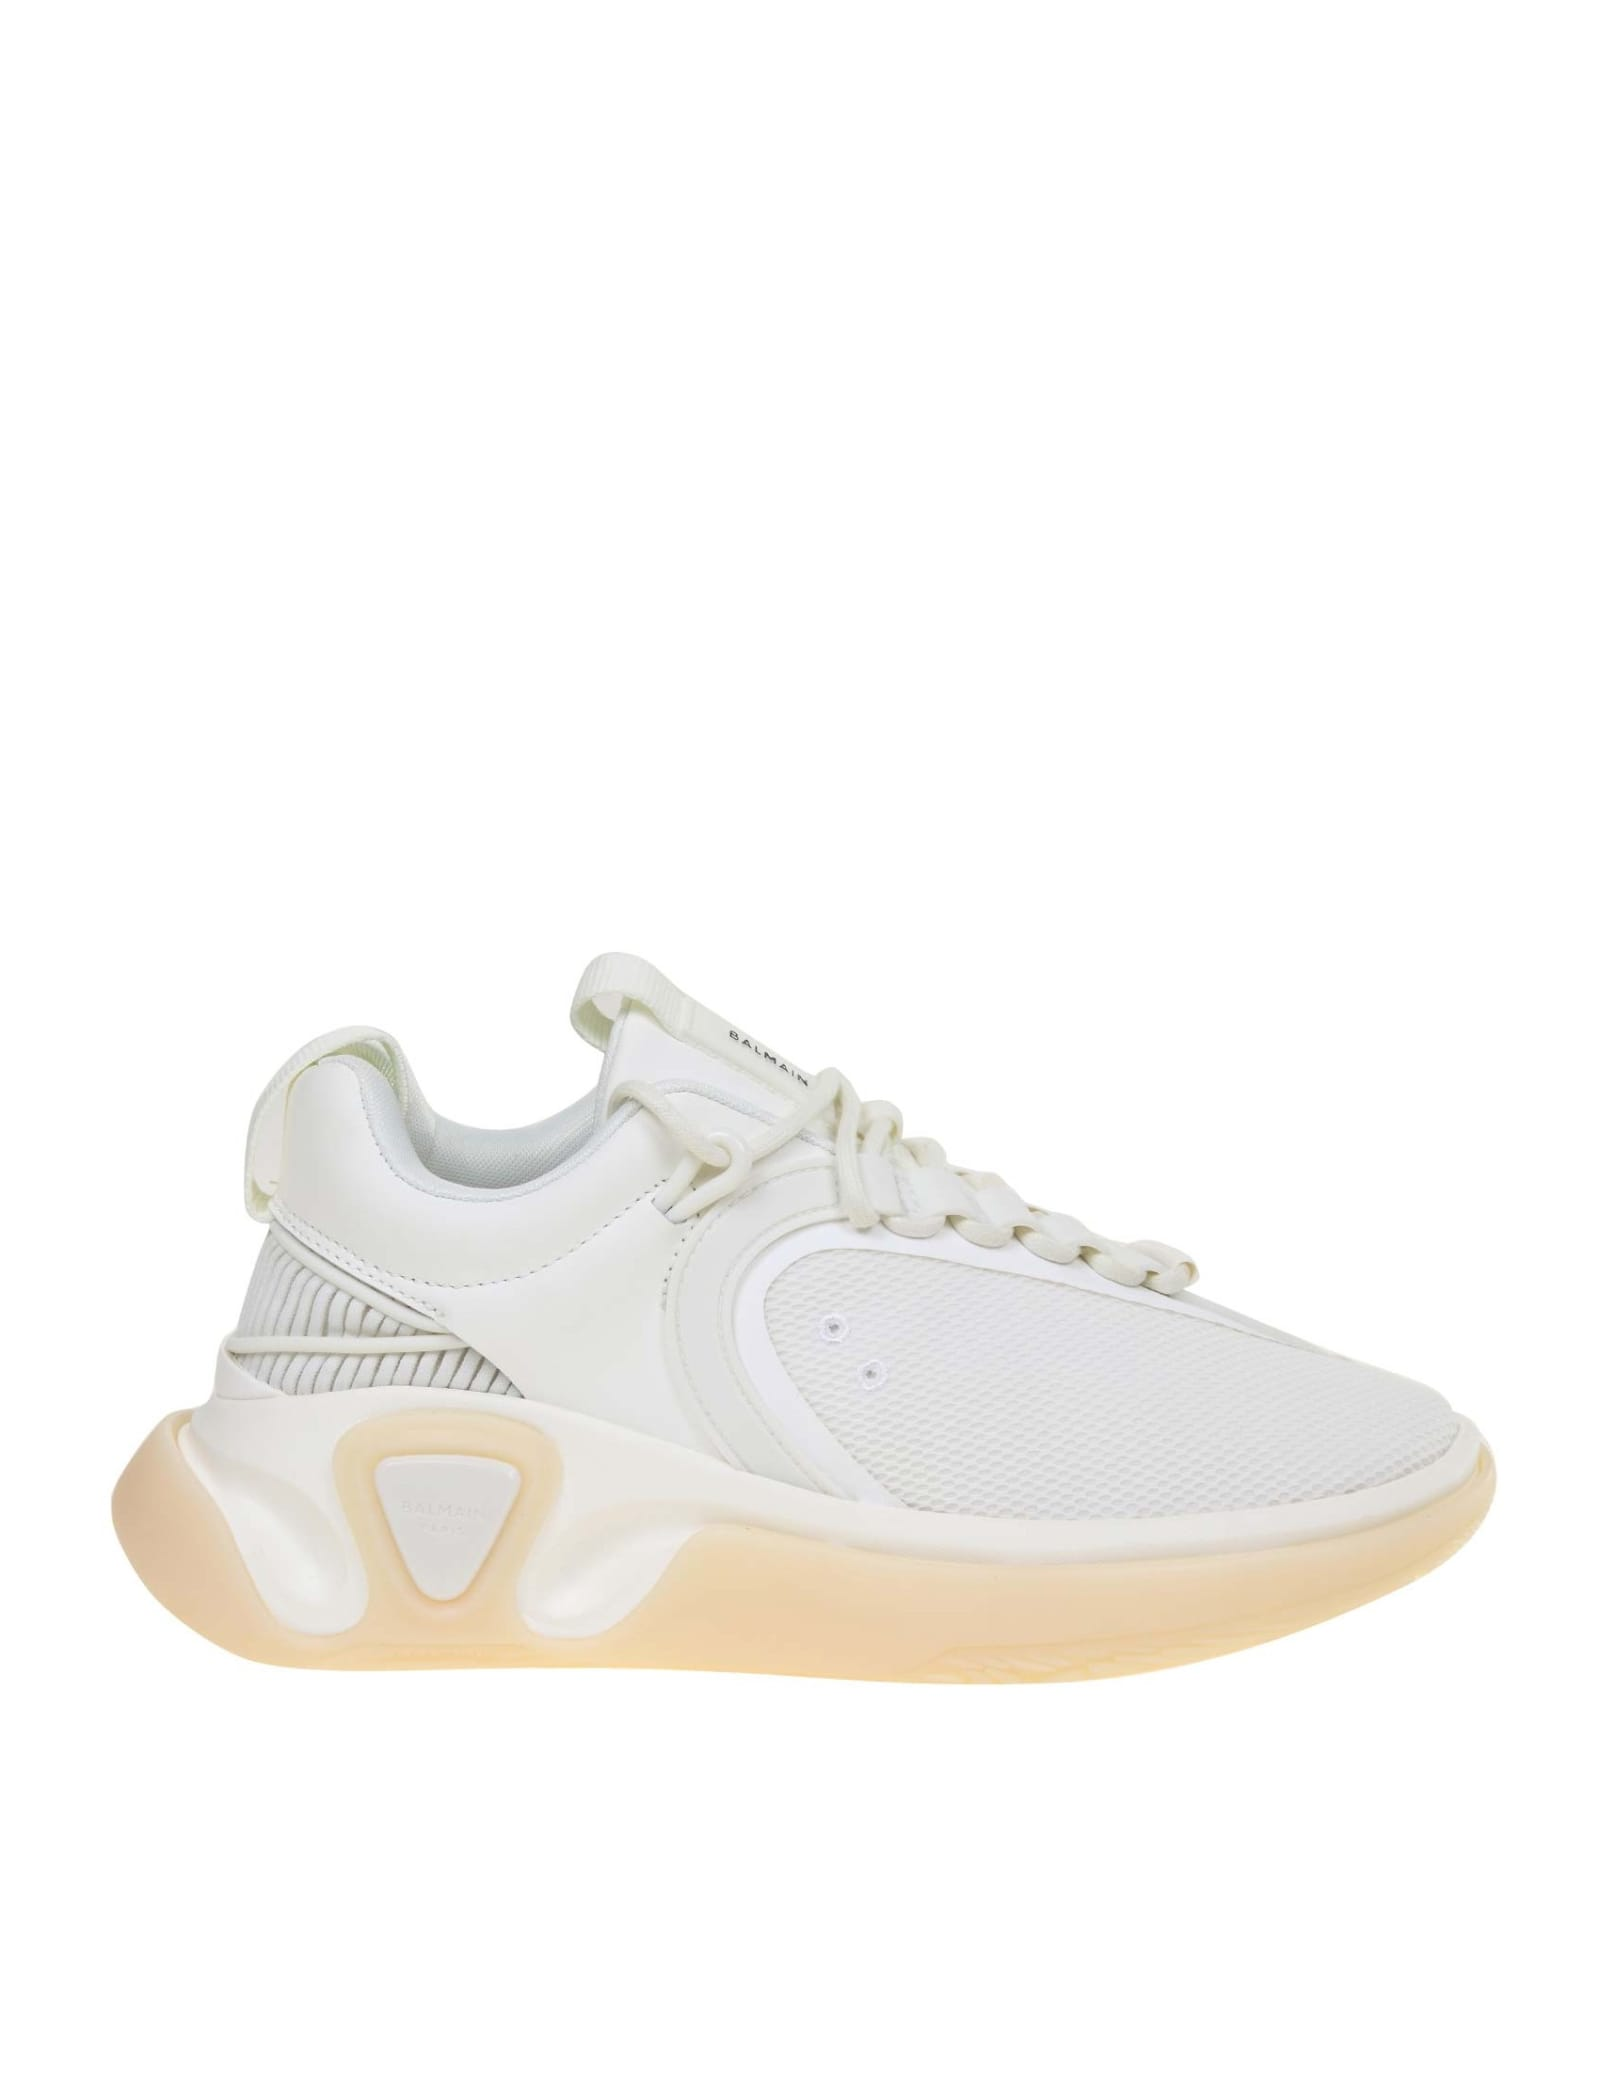 Balmain Activewears SNEAKERS B RUNNER IN NYLON COLOR WHITE